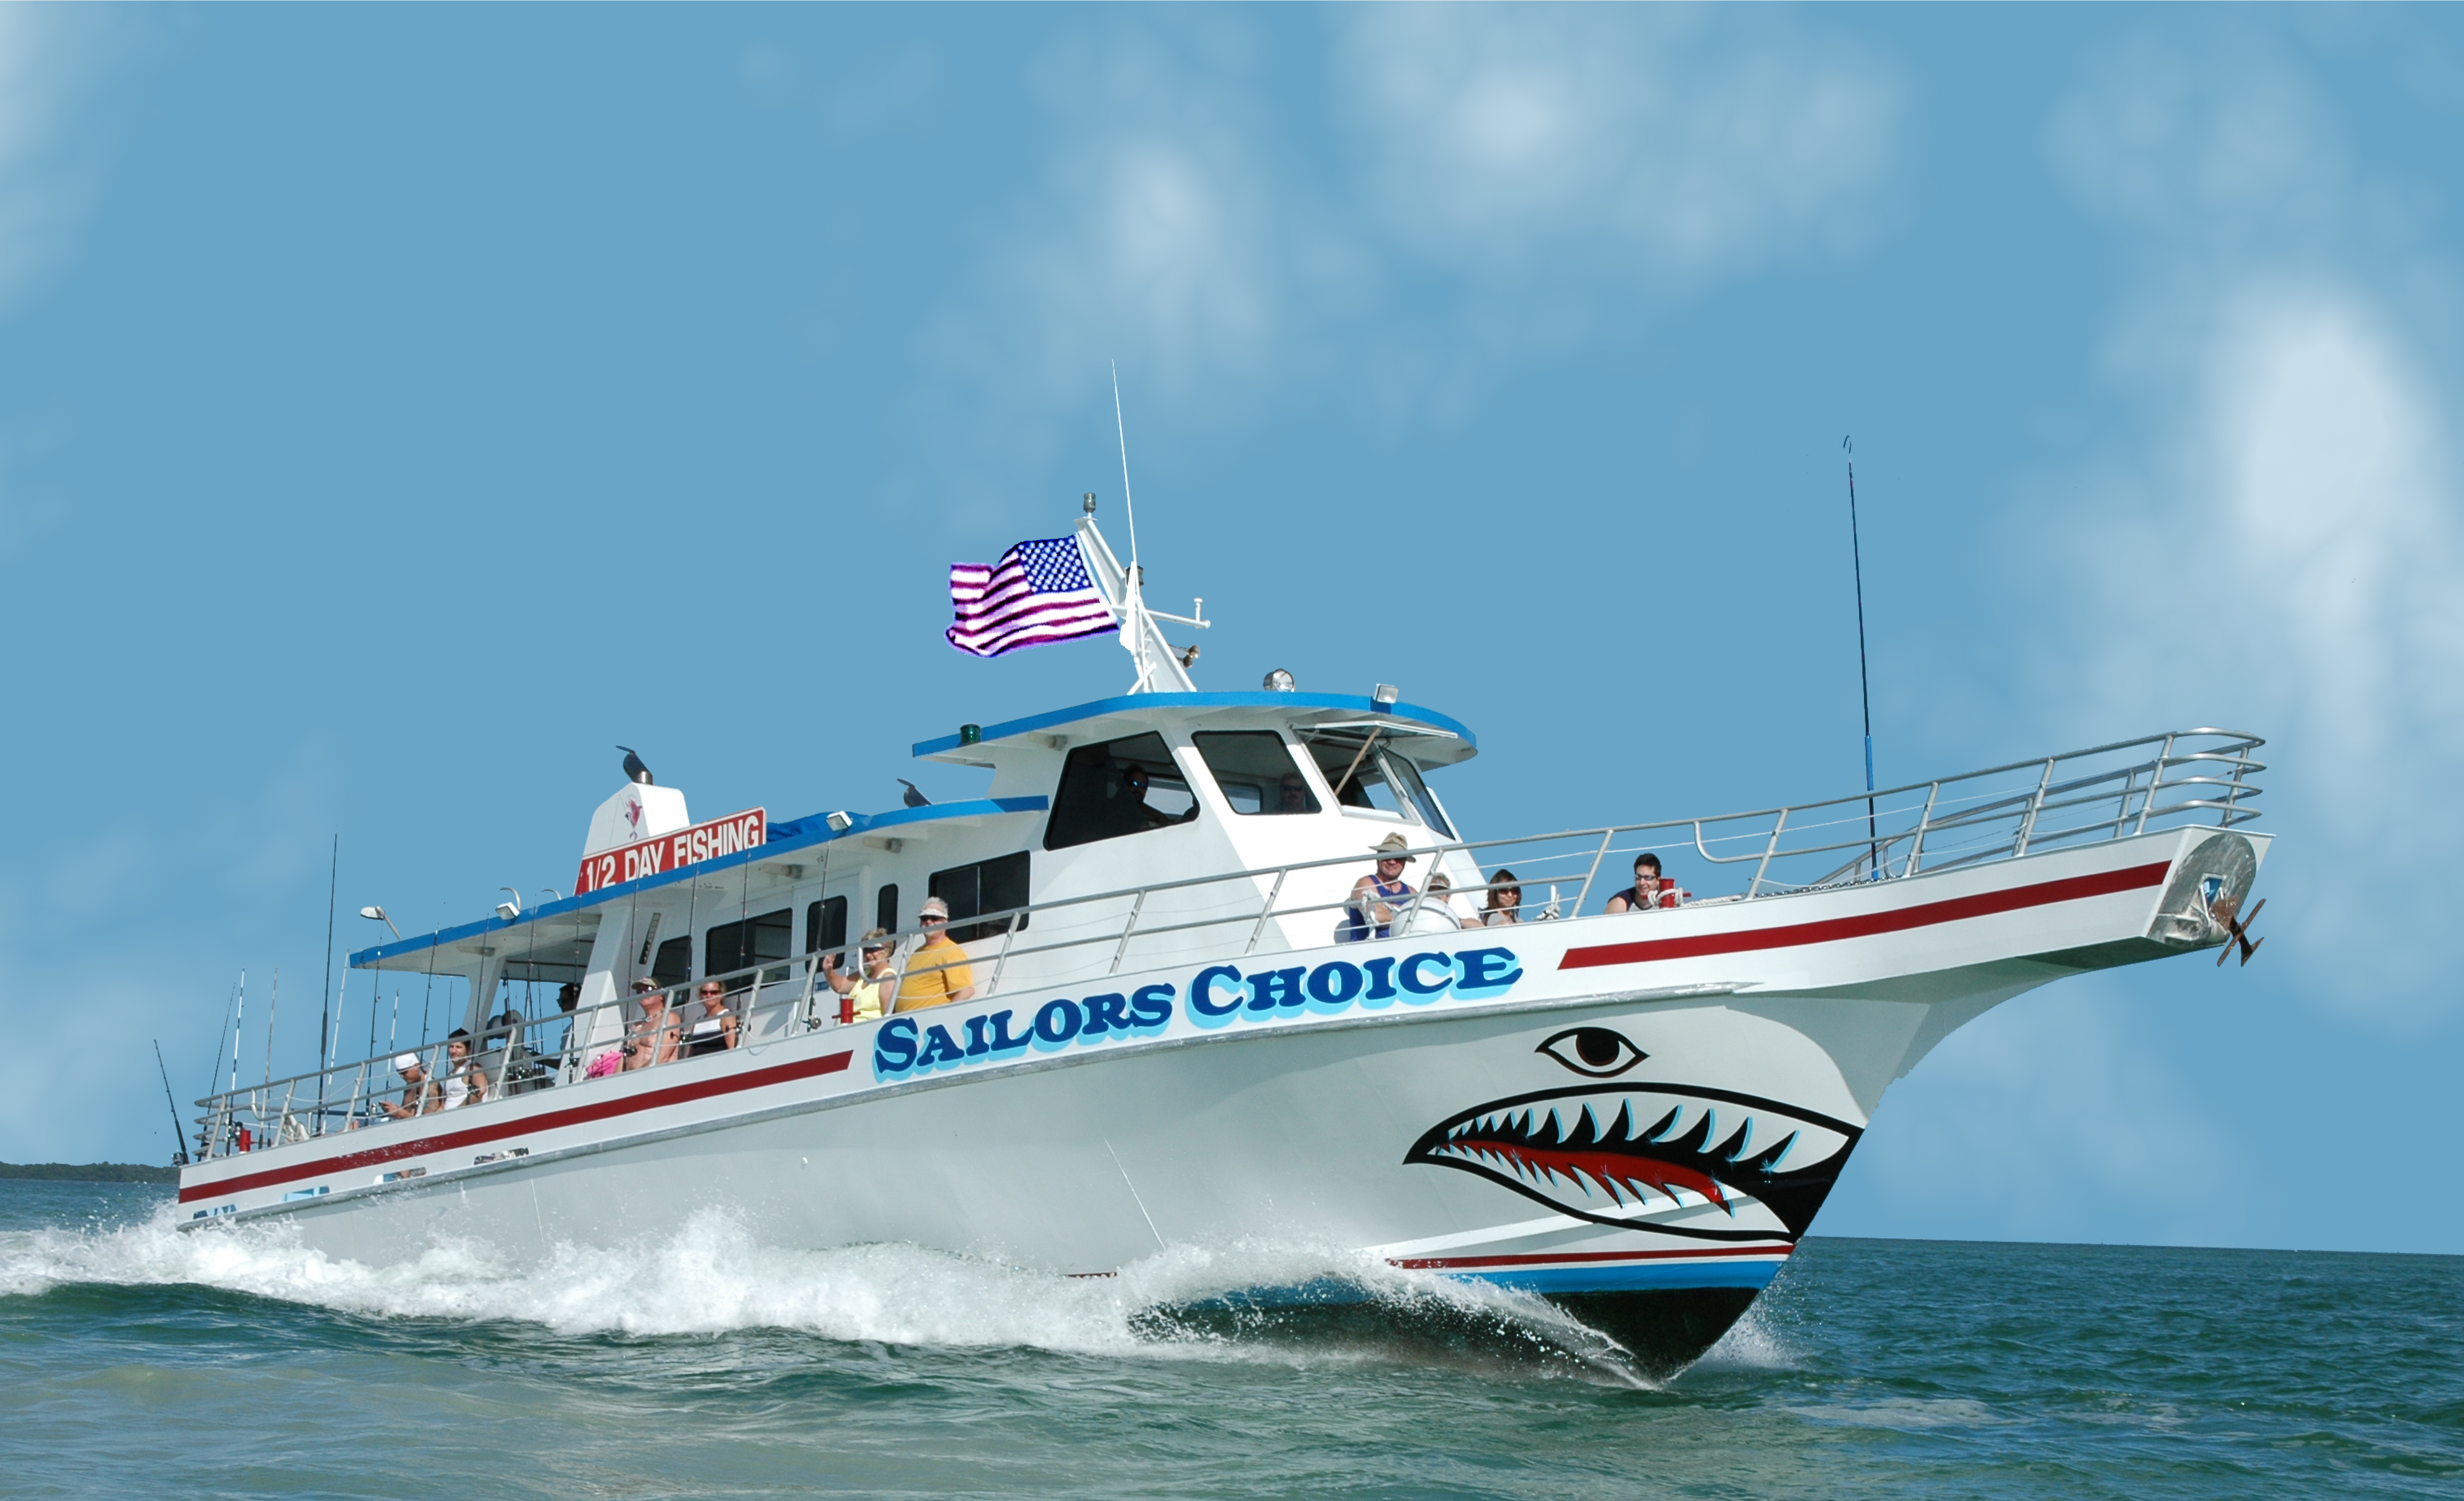 sailors choice party fishing boat best deals discounts